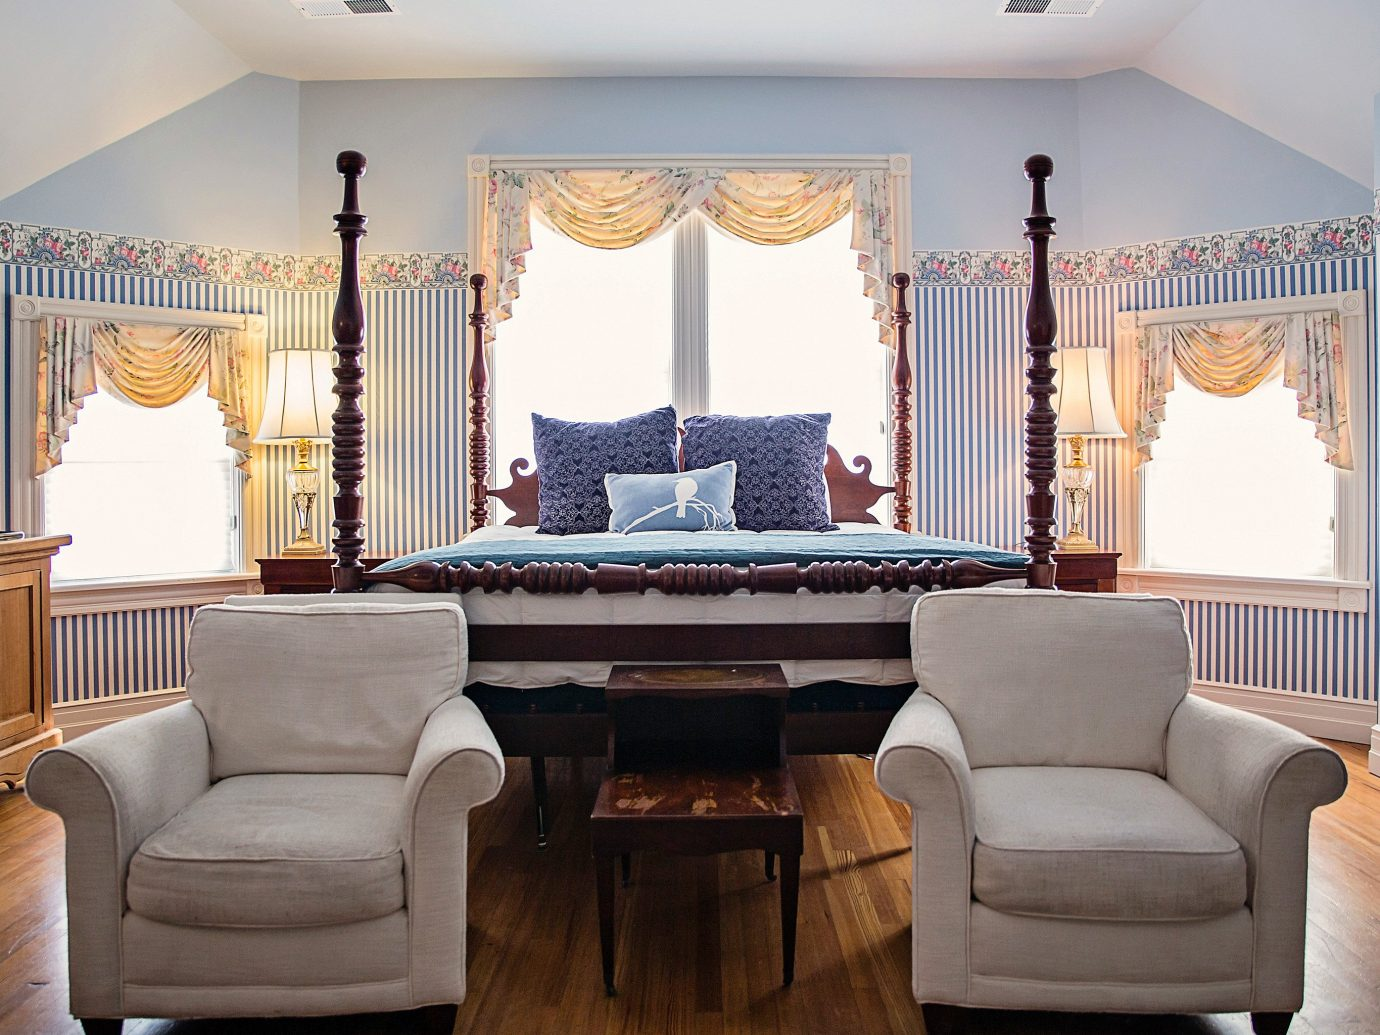 Bedroom Country Inn Living Trip Ideas floor indoor room wall living room property estate home interior design dining room furniture Suite real estate mansion window curtain Design window covering window treatment decorated several